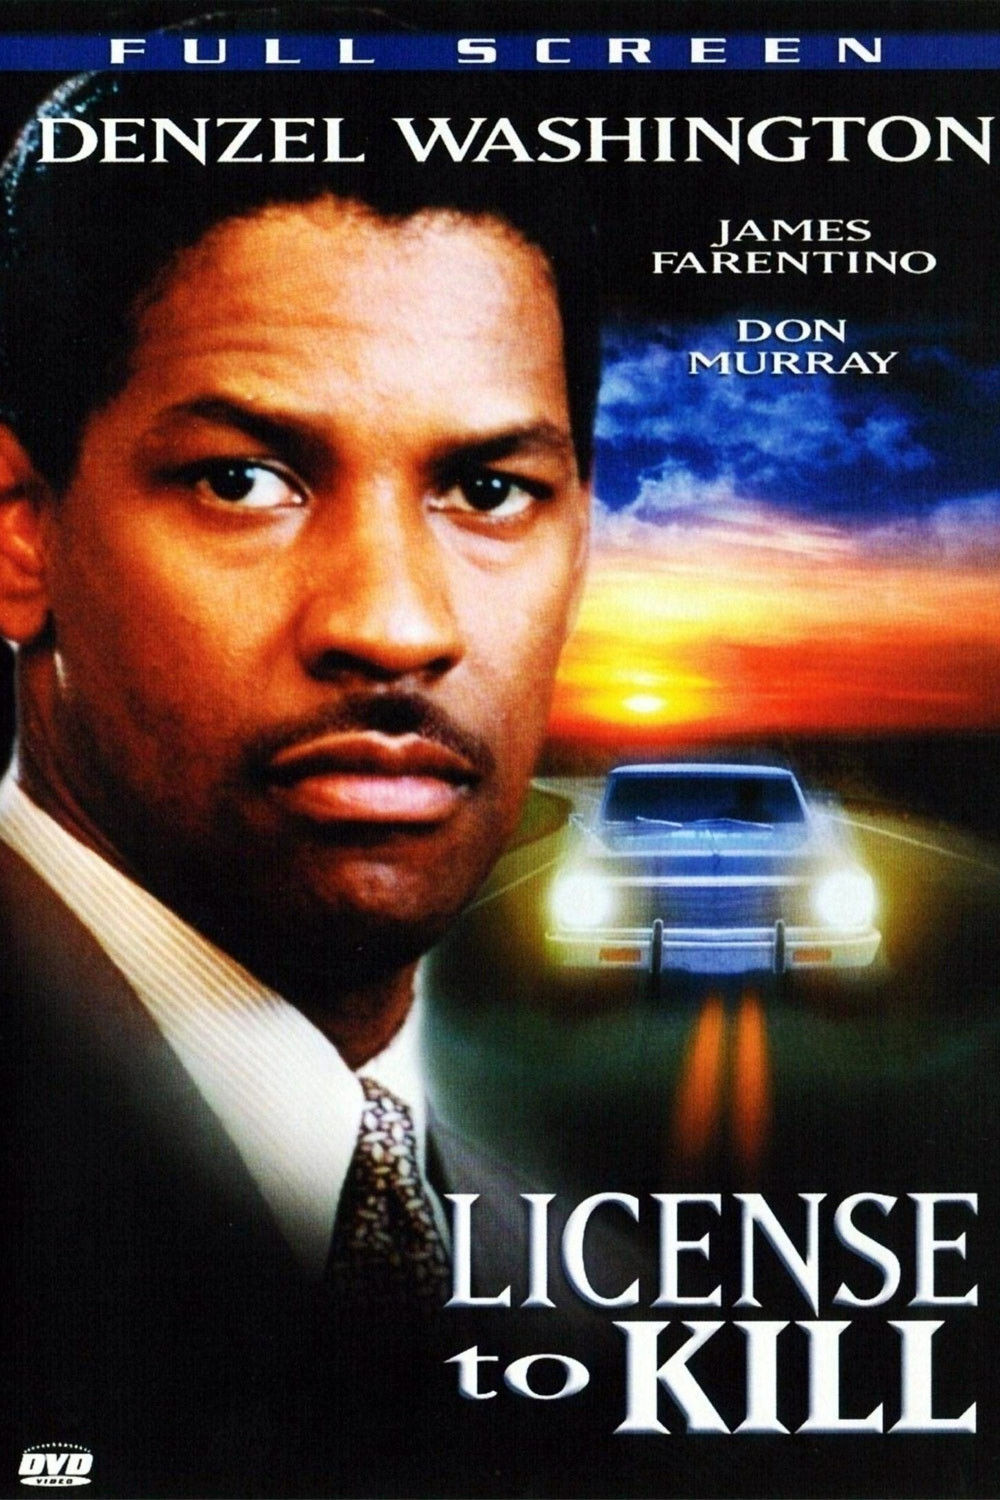 License to Kill (DVD, 2007) Denzel Washington-Full Screen Not Rated Thri